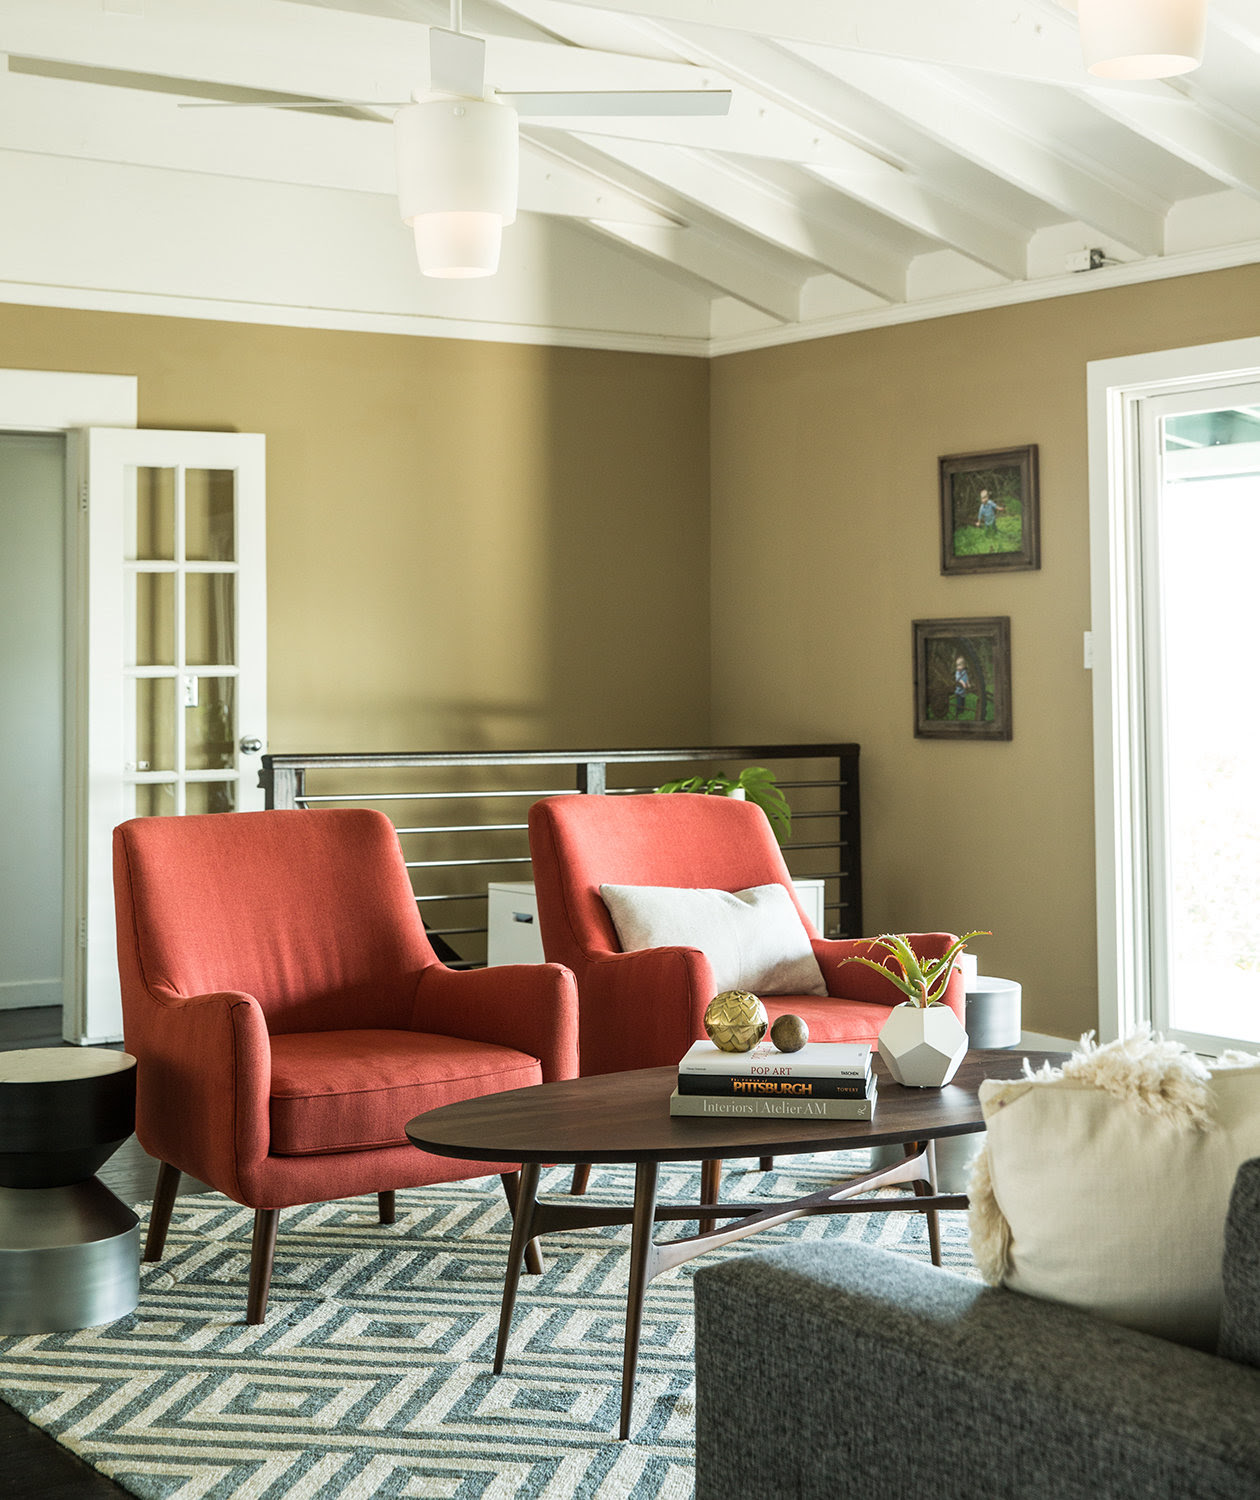 3 Budget-Friendly Interior Design Sites | Real Simple